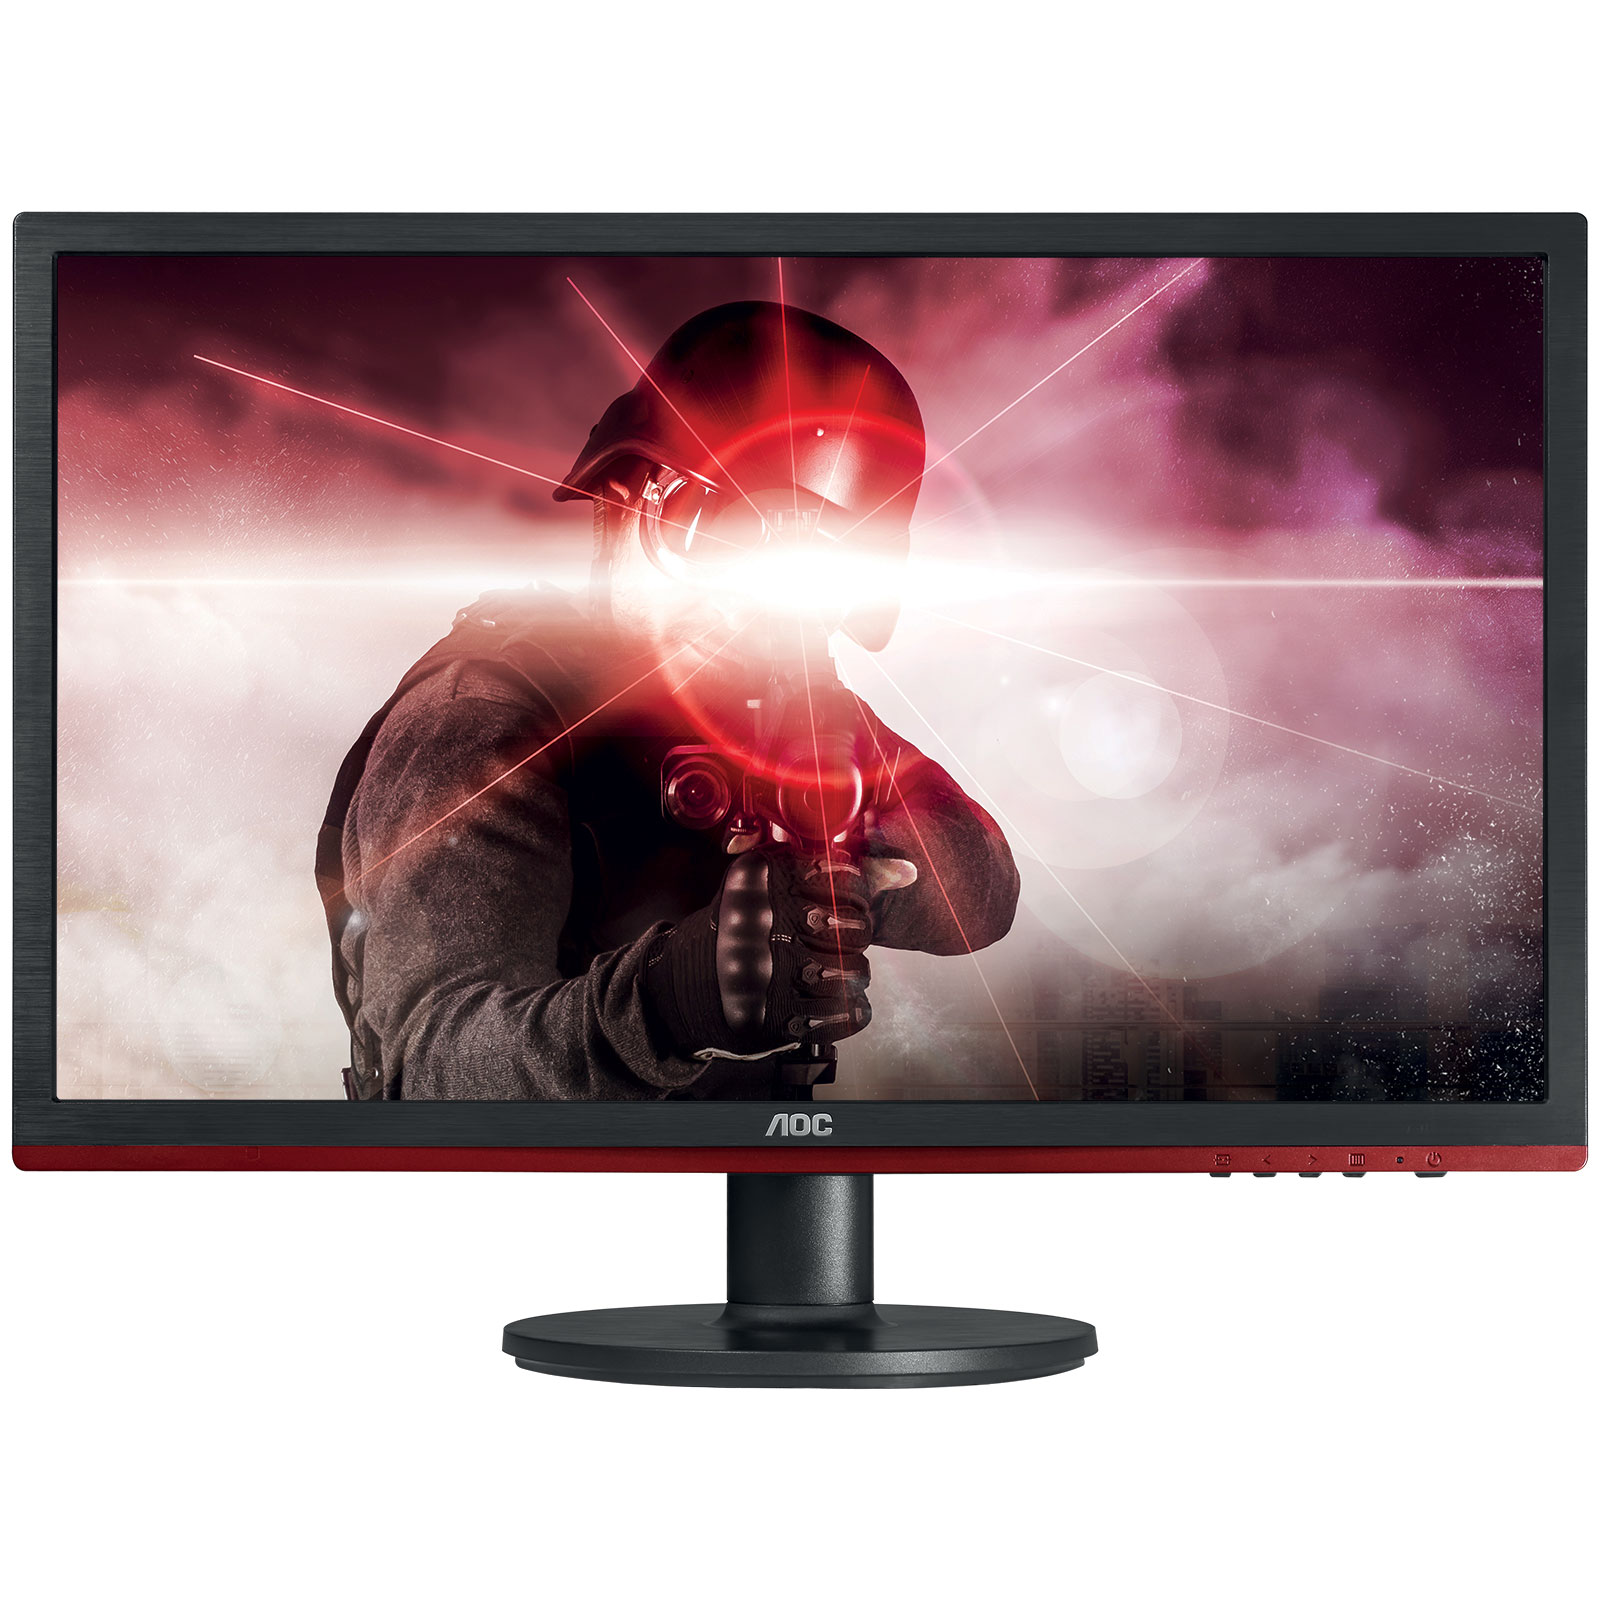 "Ecran PC AOC 21.5"" LED - G2260VWQ6 1920 x 1080 pixels - 1 ms - Format large 16/9 - DisplayPort - HDMI - Noir"